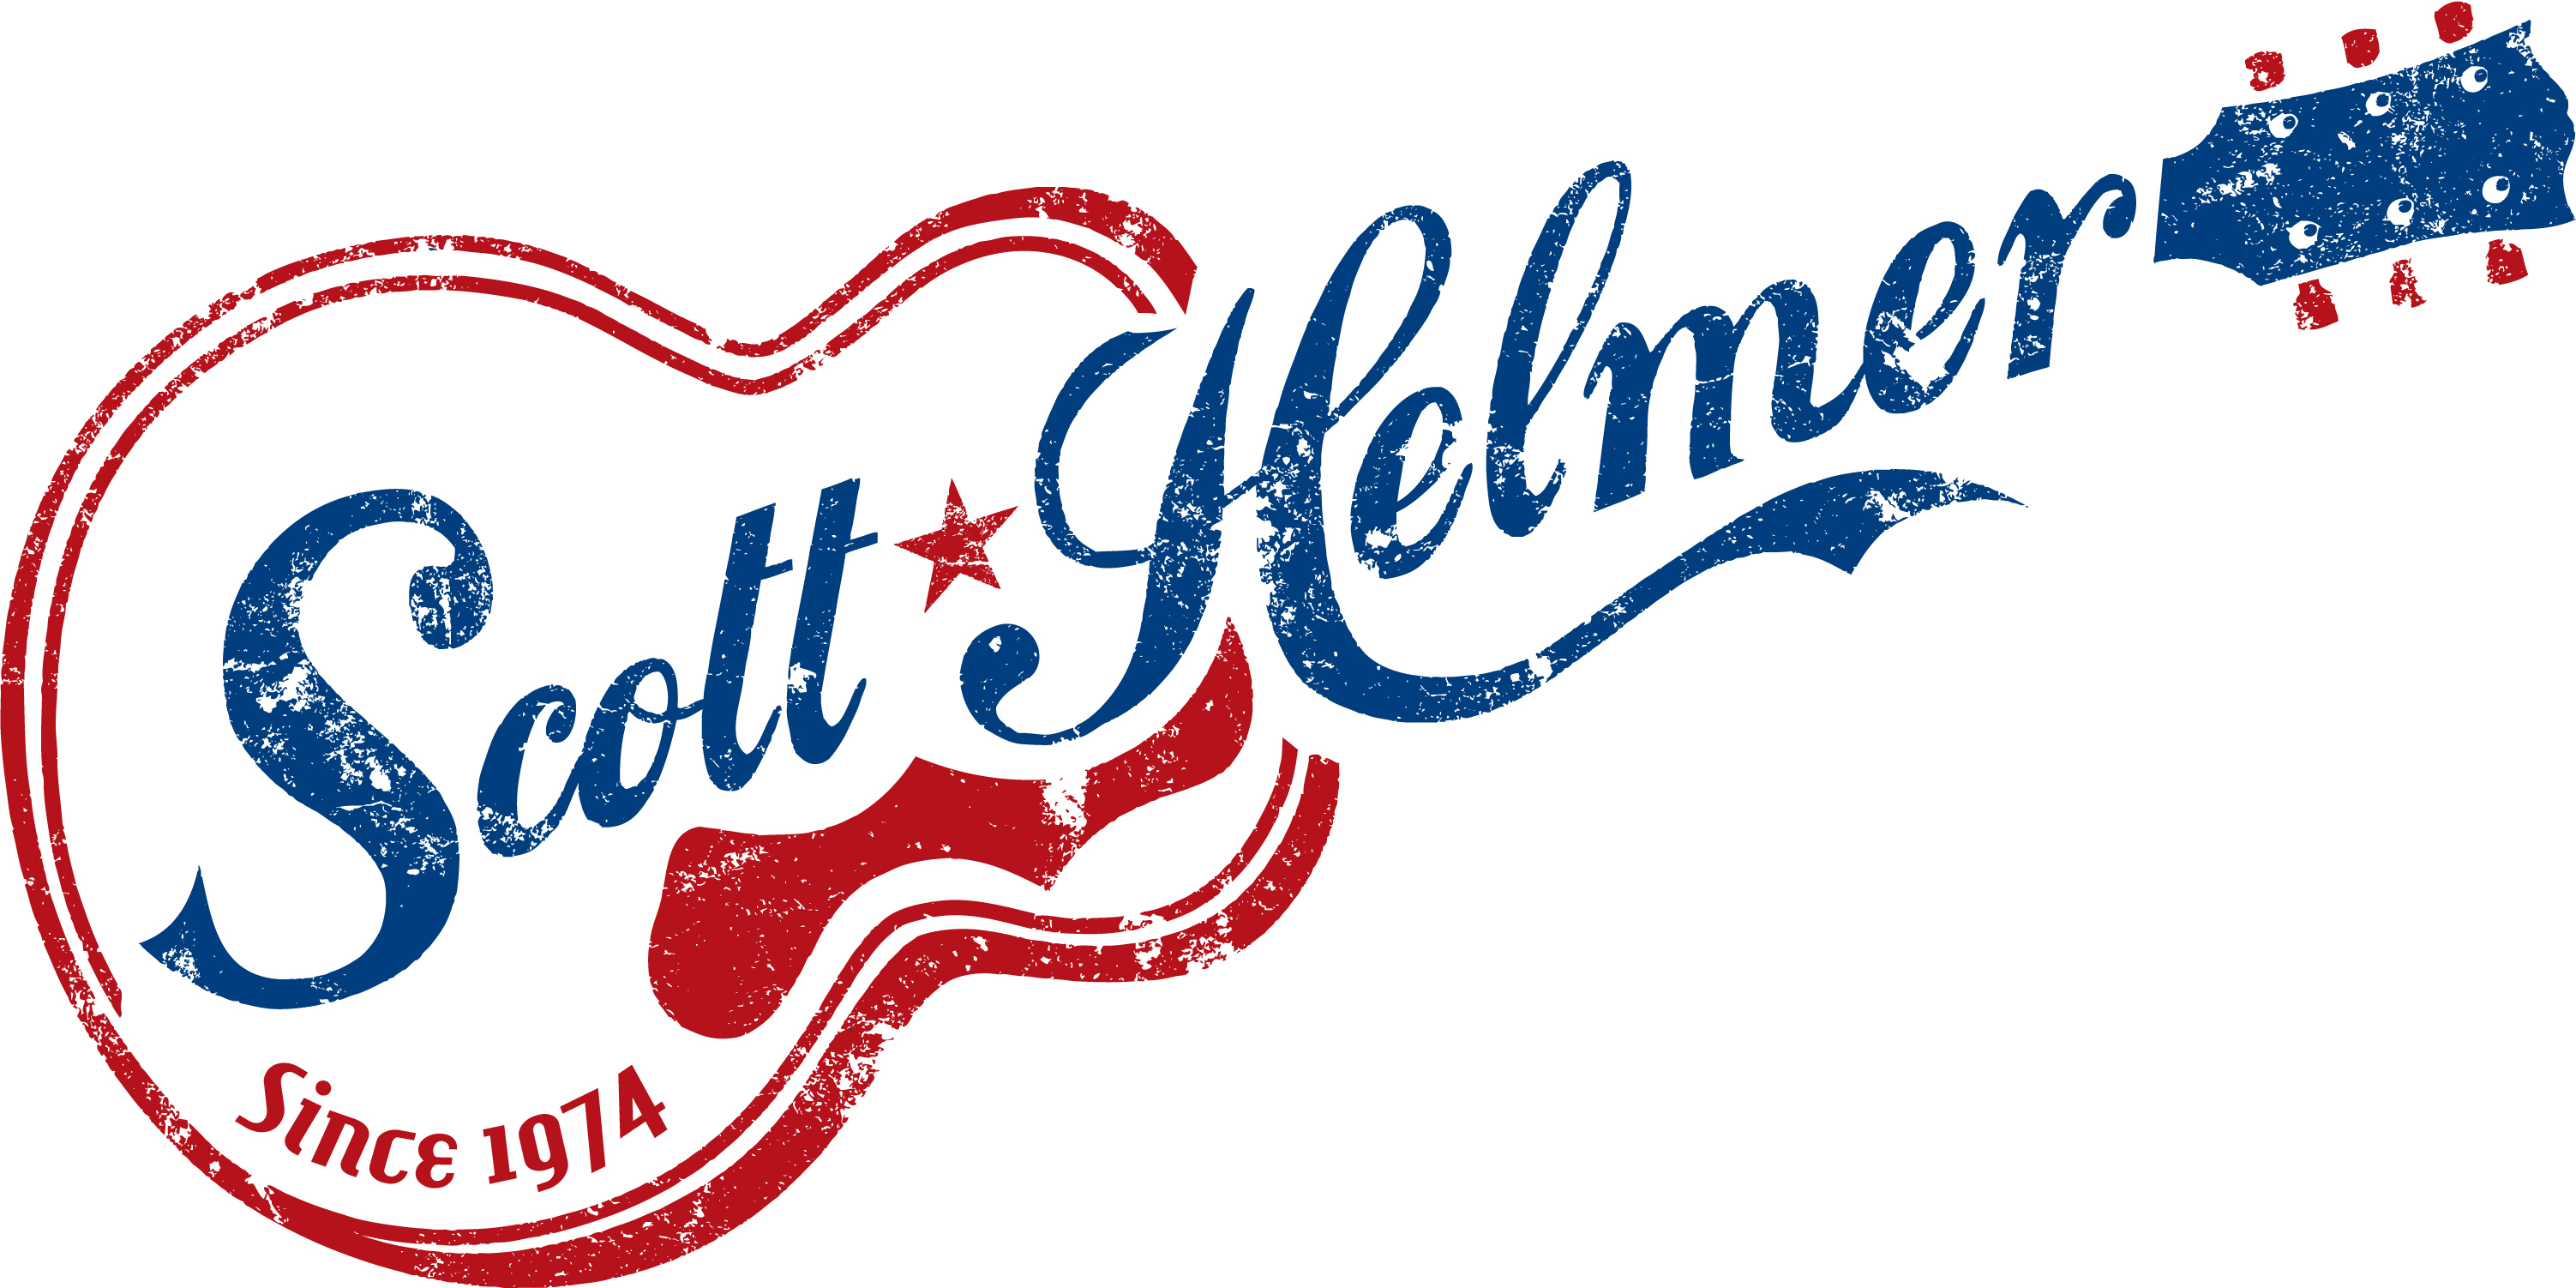 """Concert With A Cause - Scott Helmer's """"One-Man Rock & Country Music Show"""""""